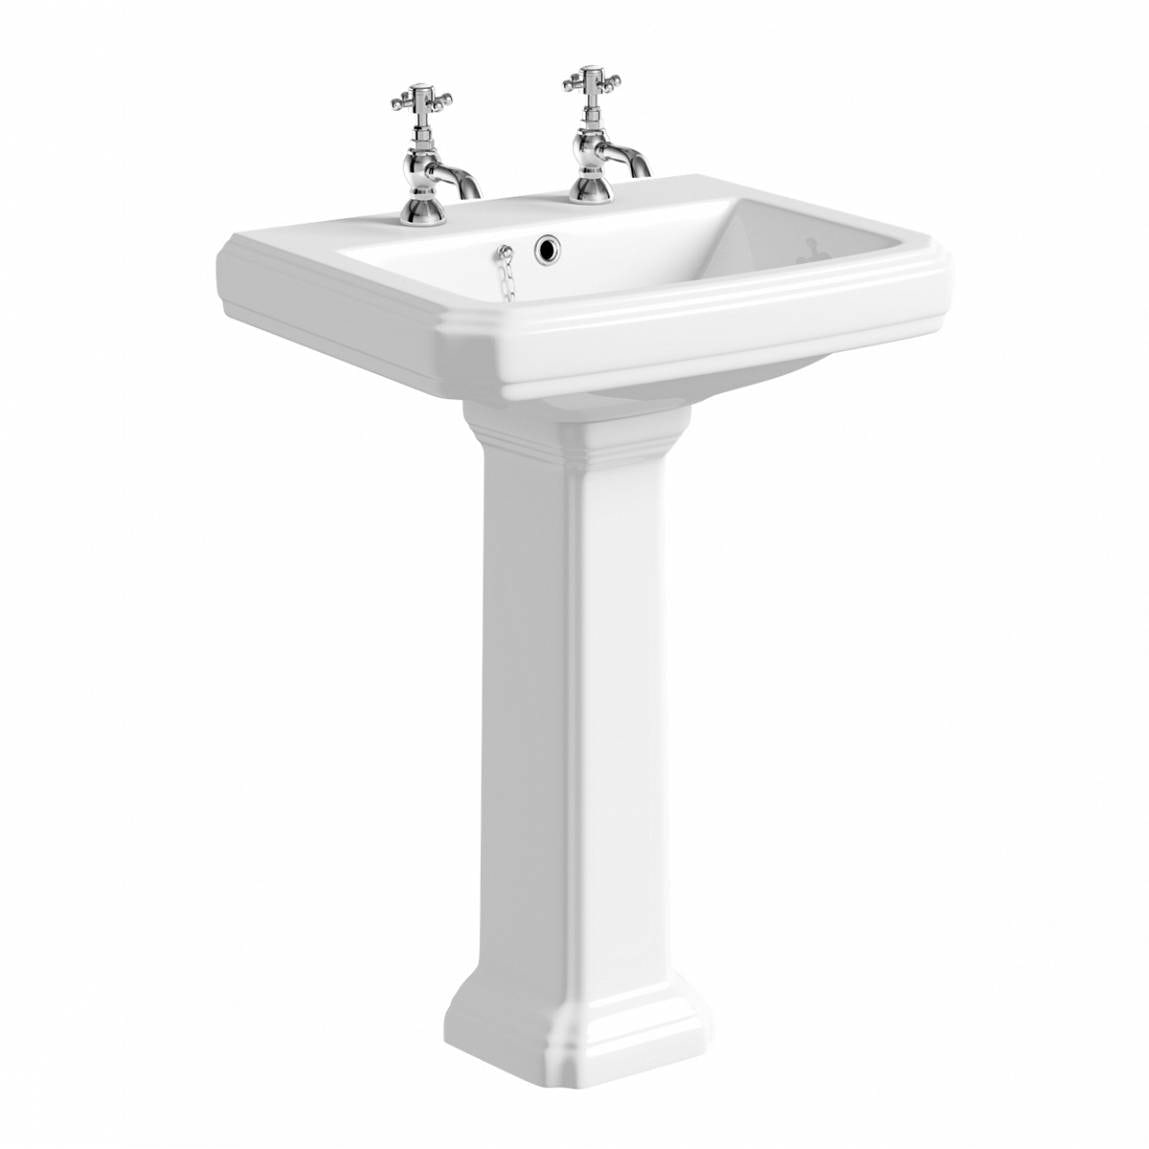 The Bath Co. Dulwich 2 tap hole full pedestal basin 615mm with waste